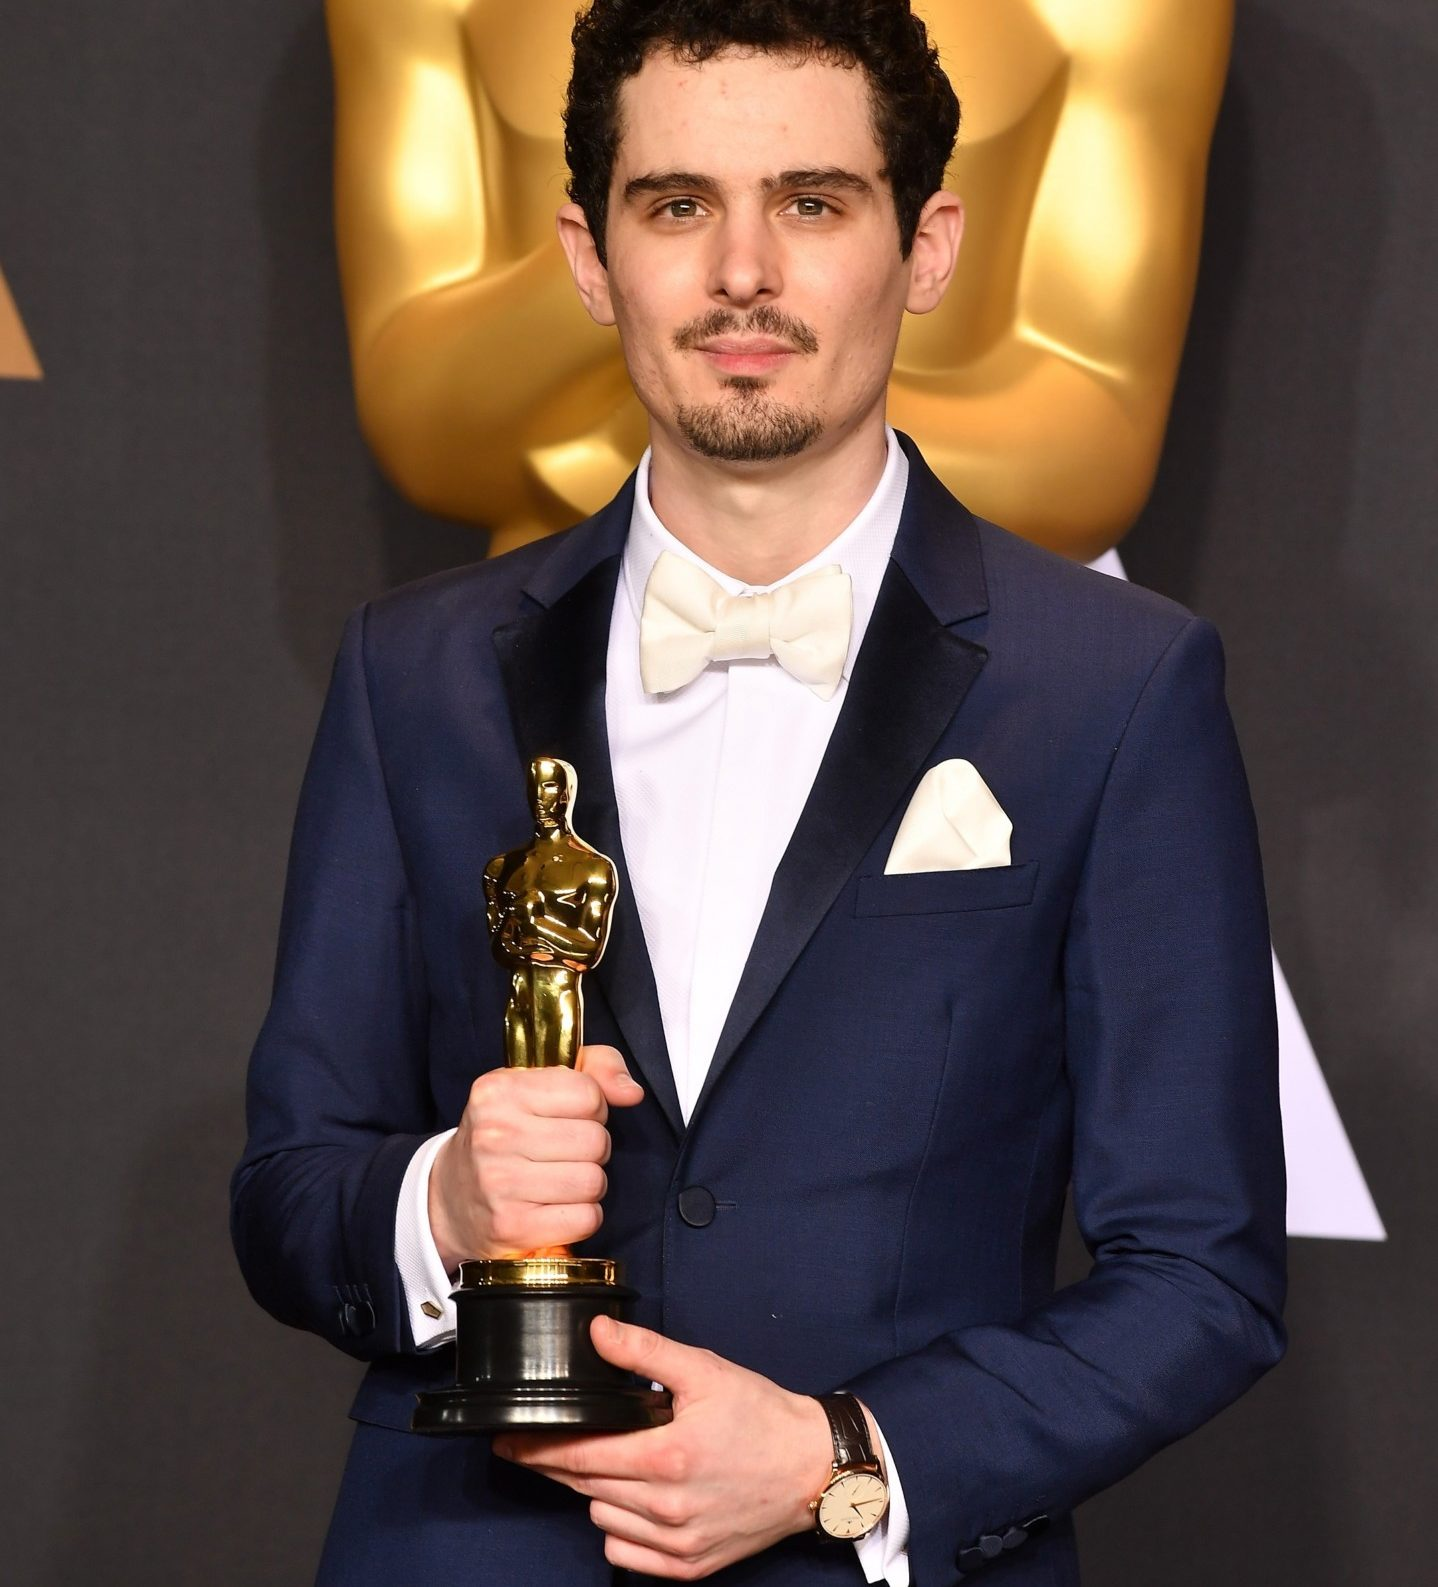 HOLLYWOOD, CA - FEBRUARY 26:  Director Damien Chazelle, winner of the Best Director award for 'La La Land,' poses in the press room during the 89th Annual Academy Awards at Hollywood & Highland Center on February 26, 2017 in Hollywood, California.  (Photo by Jeff Kravitz/FilmMagic)